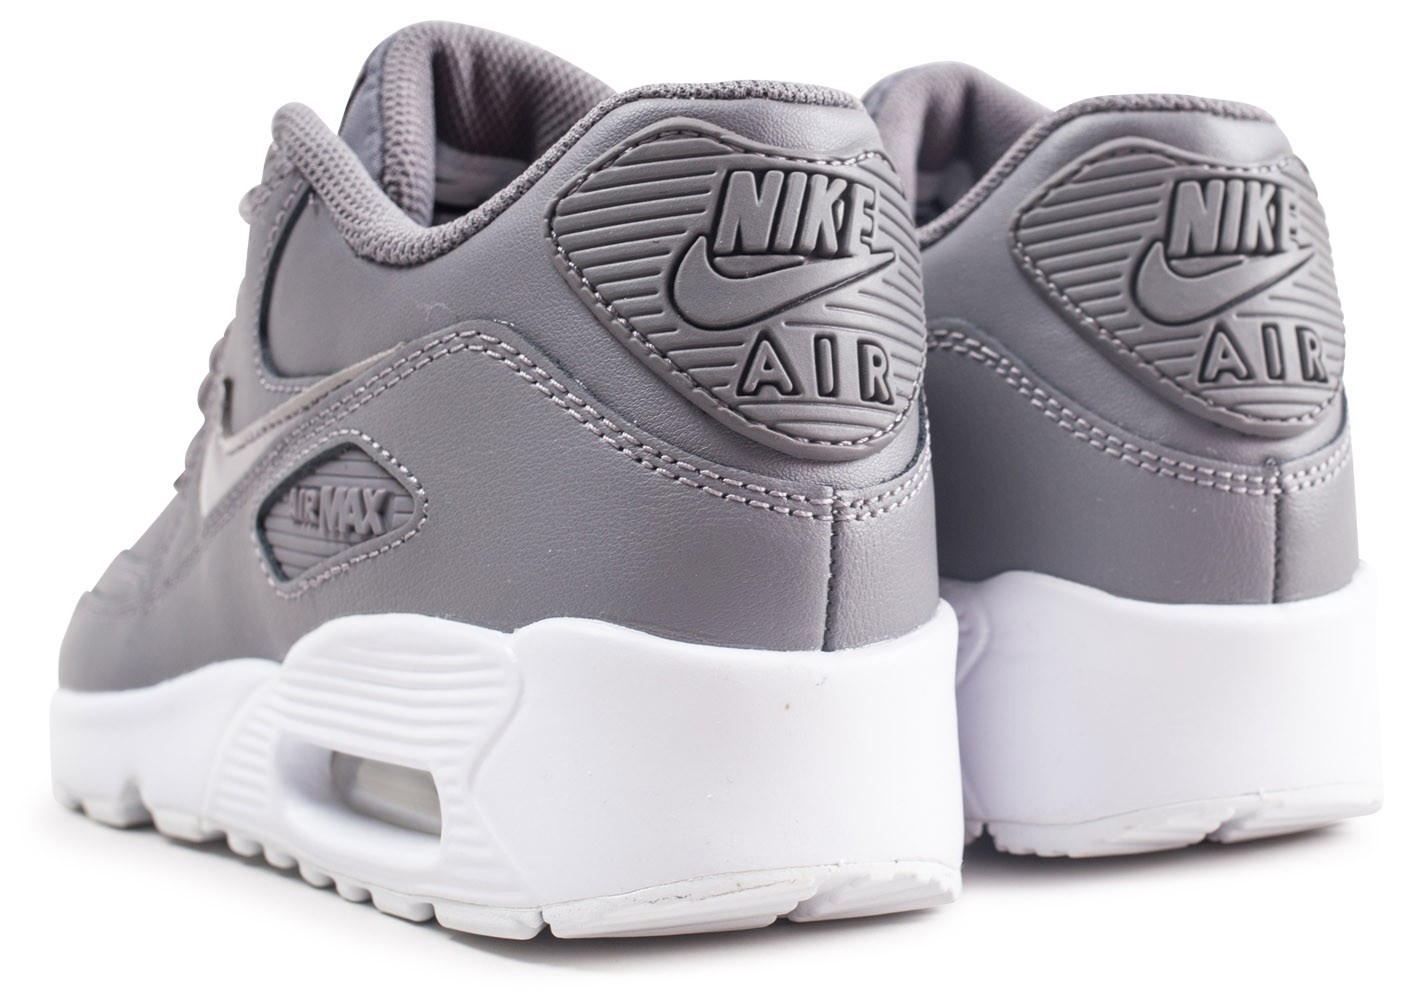 Baskets Nike Air 90 Chaussures Junior Les Grise Max Leather